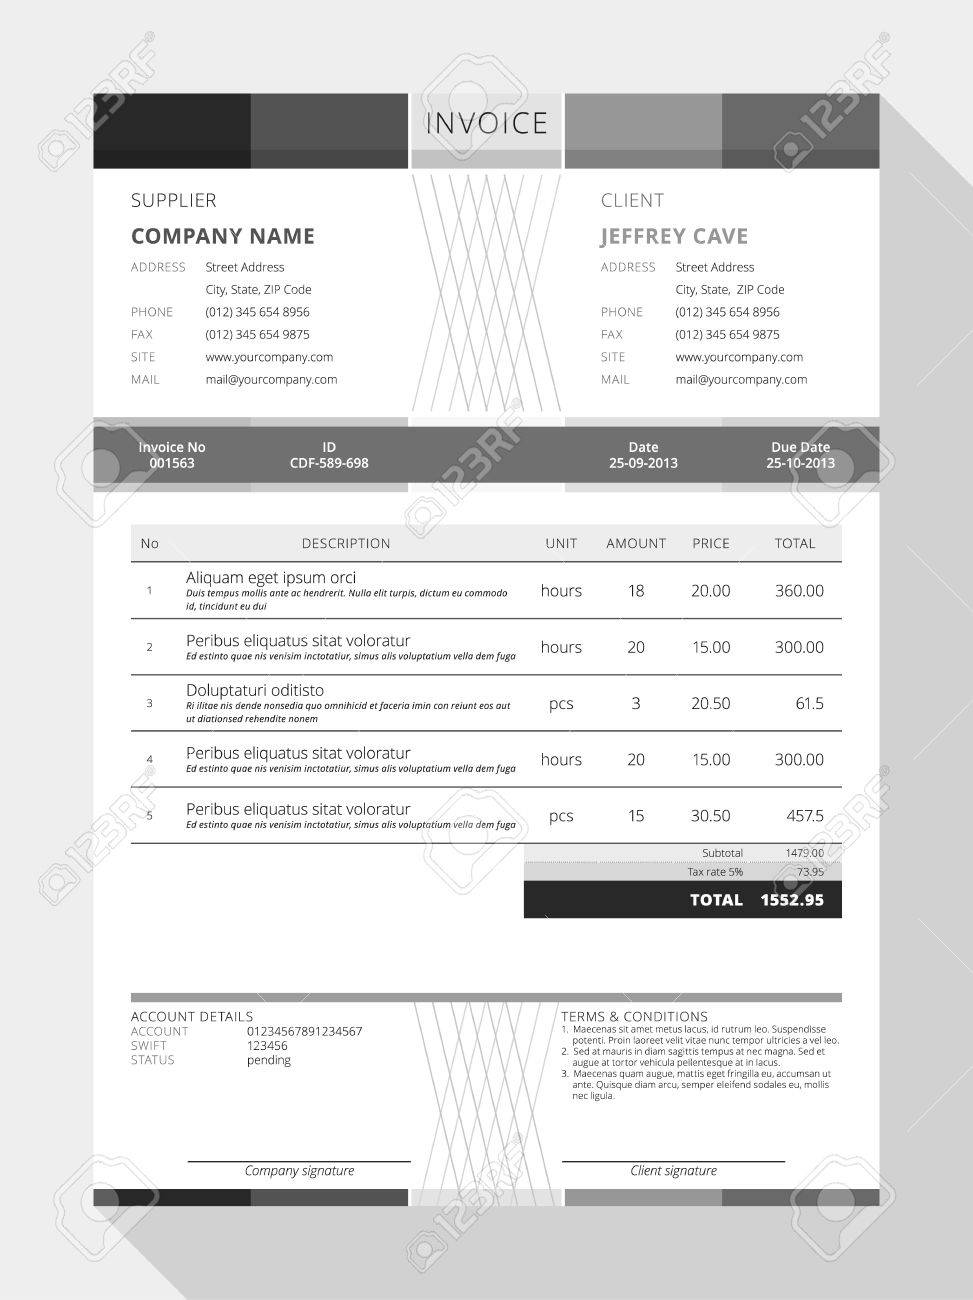 Reliefworkersus  Personable Design An Invoice  Professional Graphic Design Invoice  With Gorgeous Vector Customizable Invoice Form Template Design Vector   Design An Invoice With Easy On The Eye Coding Invoices Accounts Payable Also Create Your Own Invoice In Addition Import Invoices Into Quickbooks And Quickbooks Email Invoices As Well As Google Wallet Invoice Additionally How To Make An Invoice In Excel From Happytomco With Reliefworkersus  Gorgeous Design An Invoice  Professional Graphic Design Invoice  With Easy On The Eye Vector Customizable Invoice Form Template Design Vector   Design An Invoice And Personable Coding Invoices Accounts Payable Also Create Your Own Invoice In Addition Import Invoices Into Quickbooks From Happytomco